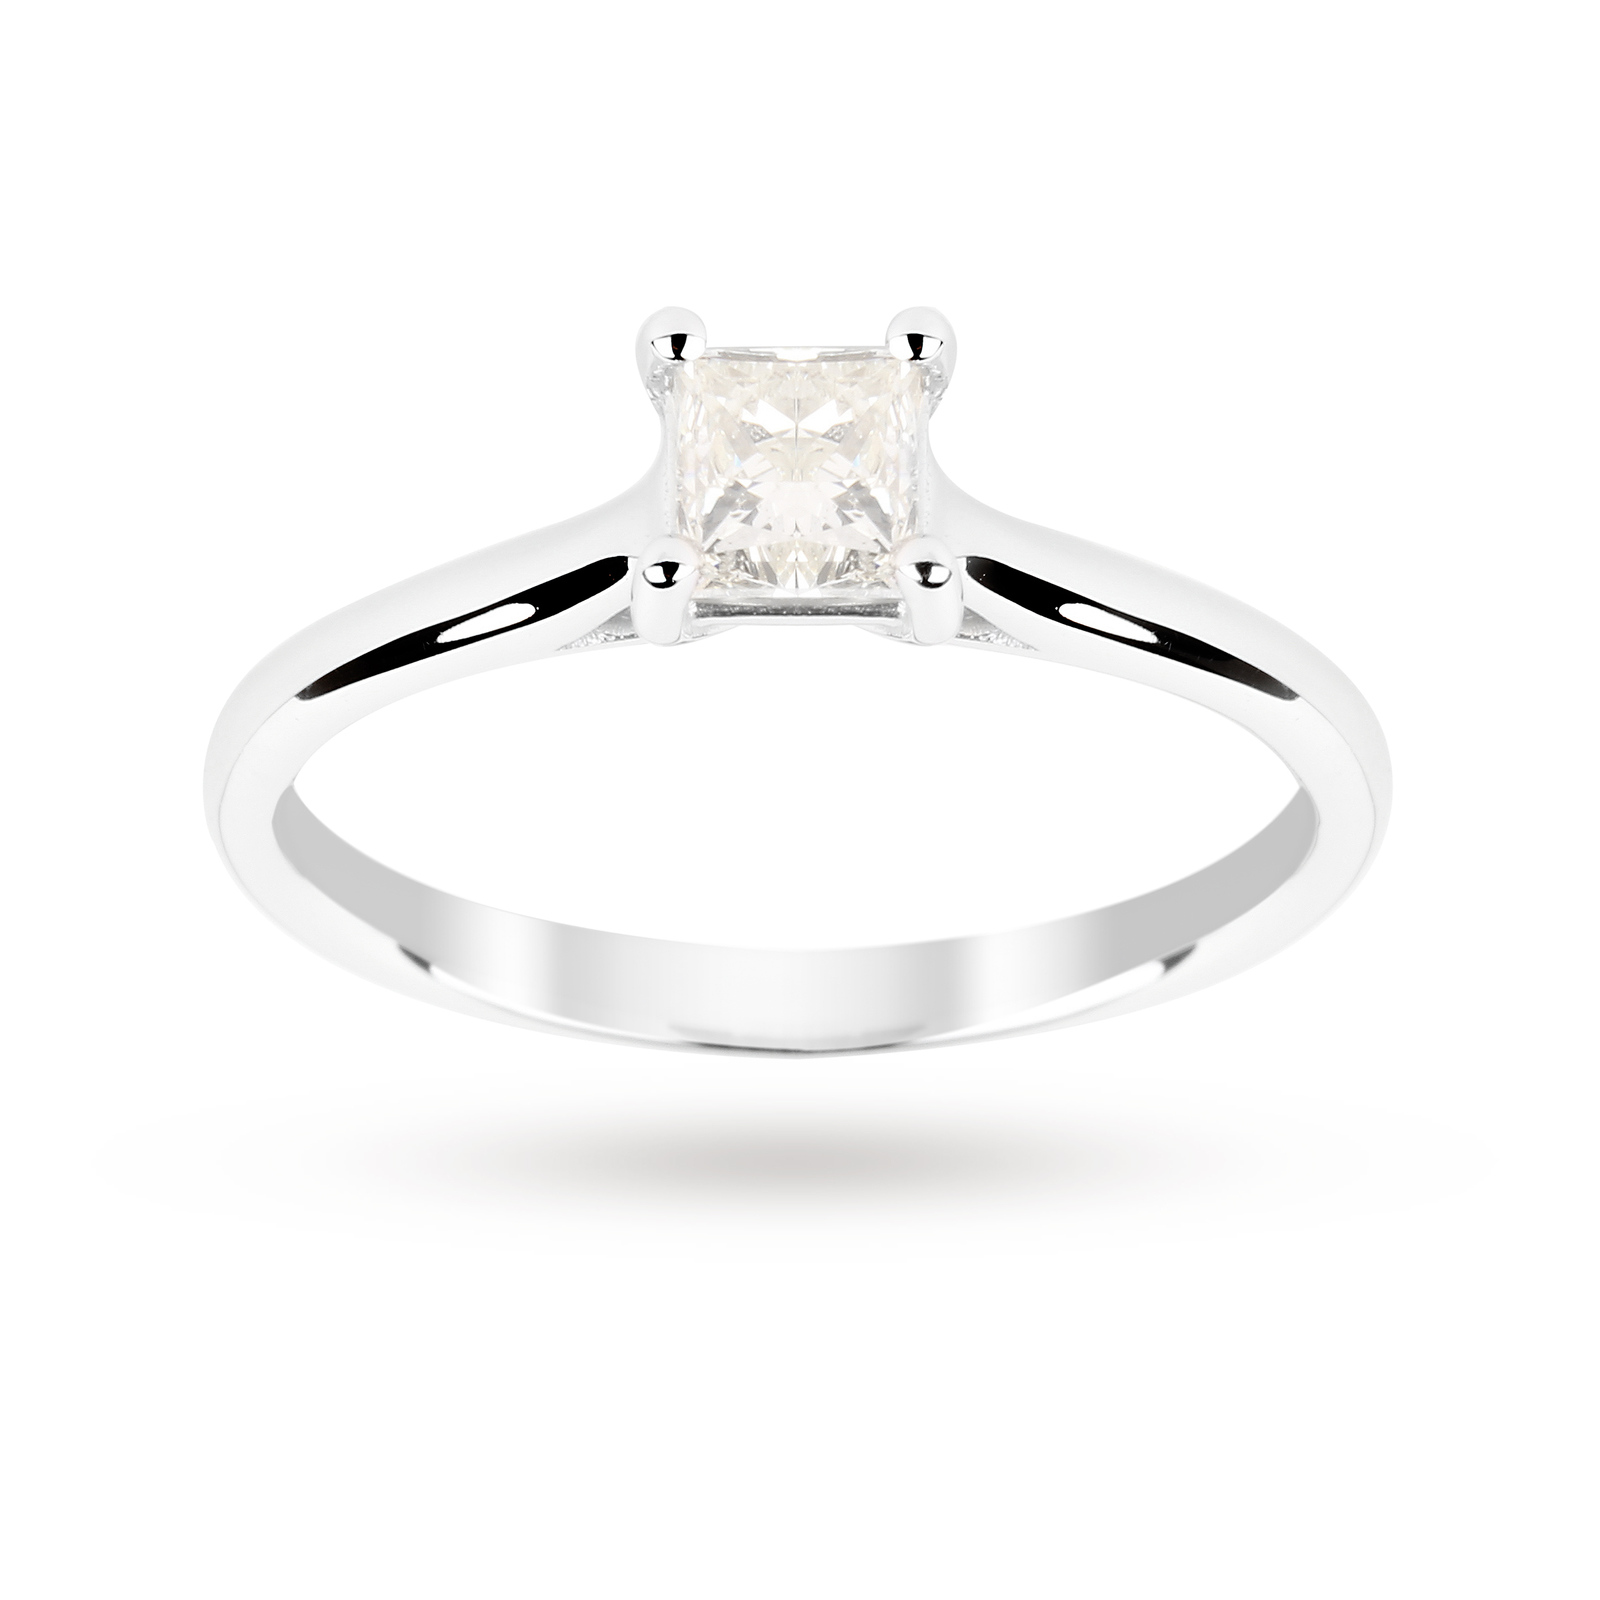 Princess Cut 0.50 Carat 4 Claw Diamond Solitaire Ring in ...